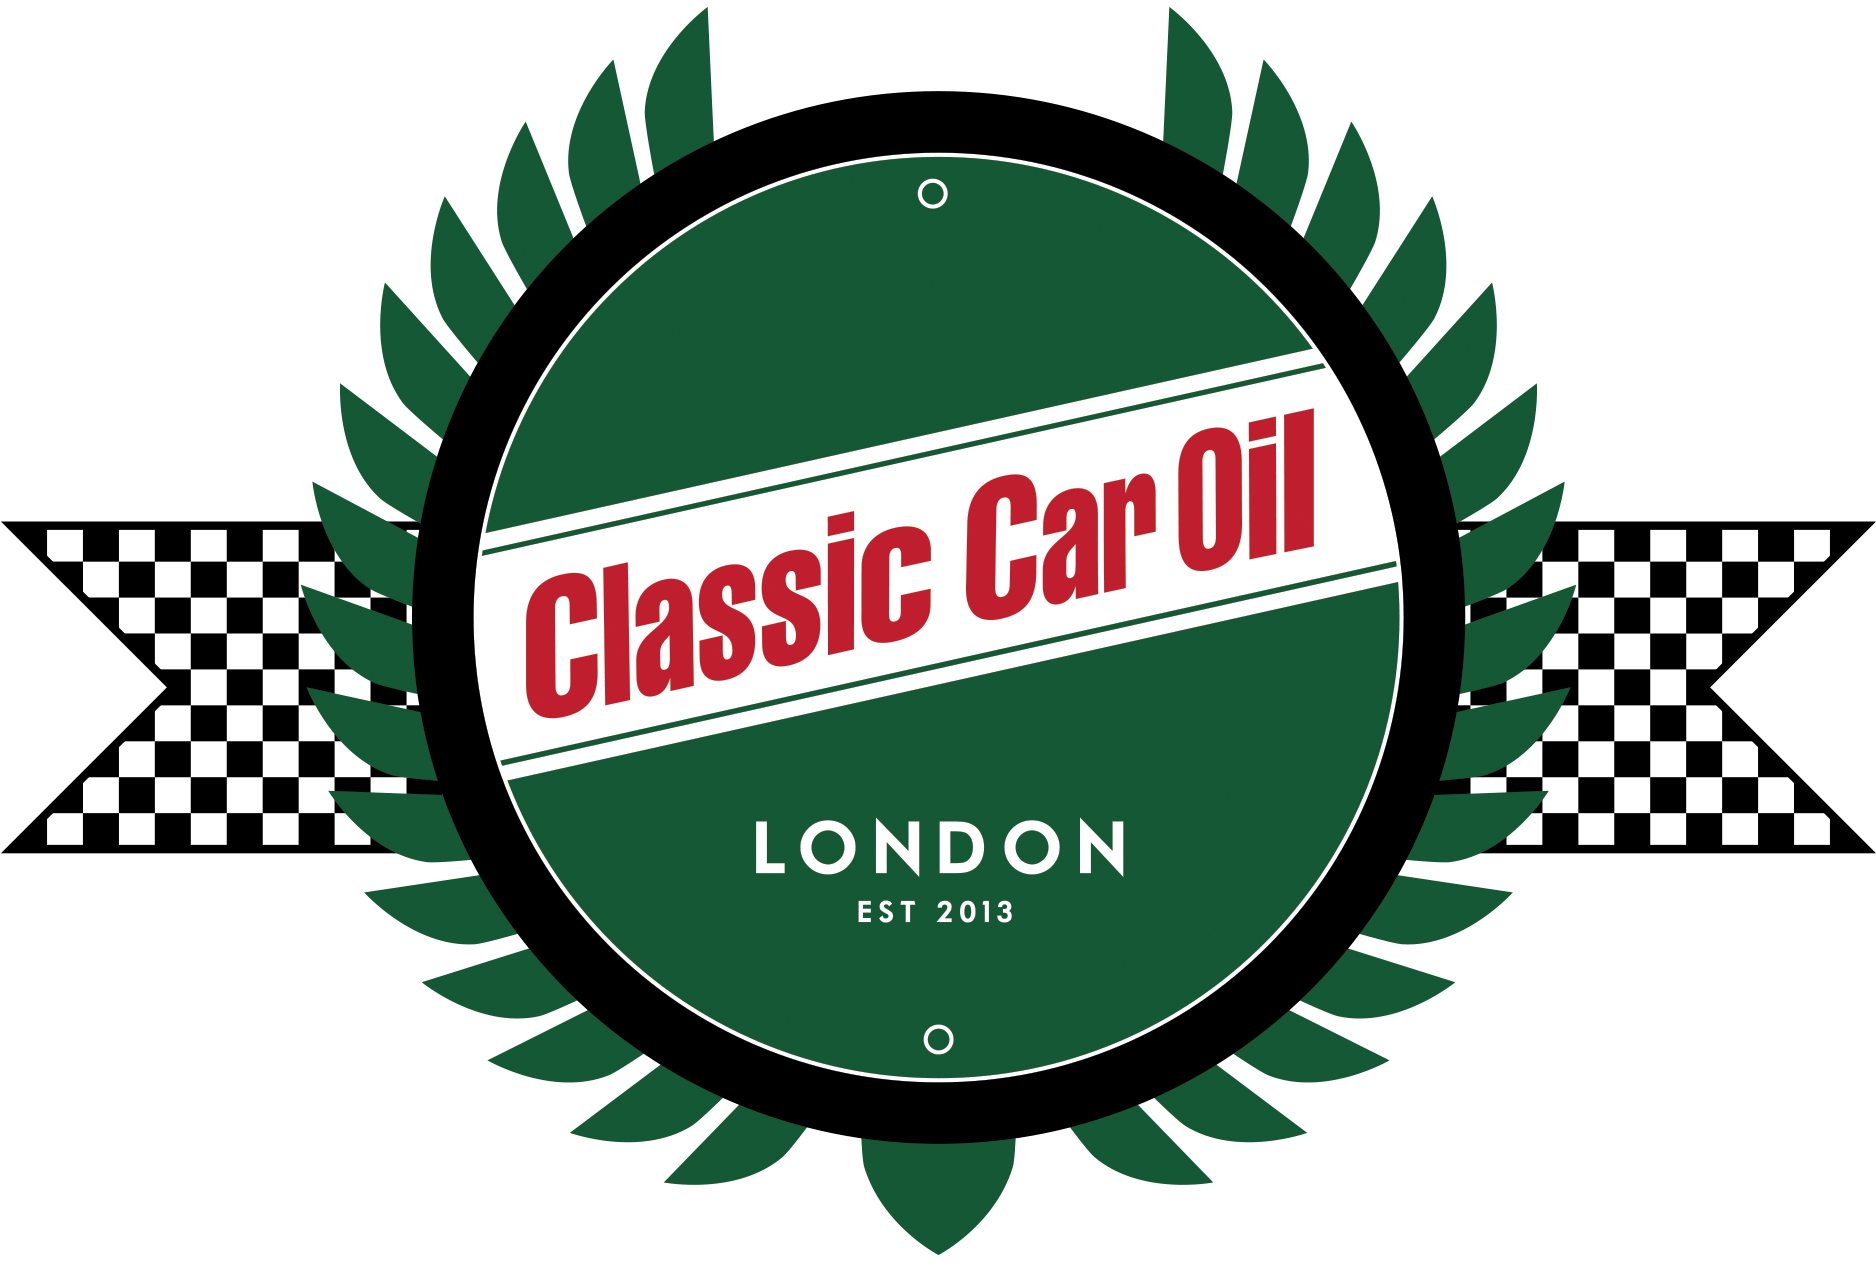 Classic Car Oil London